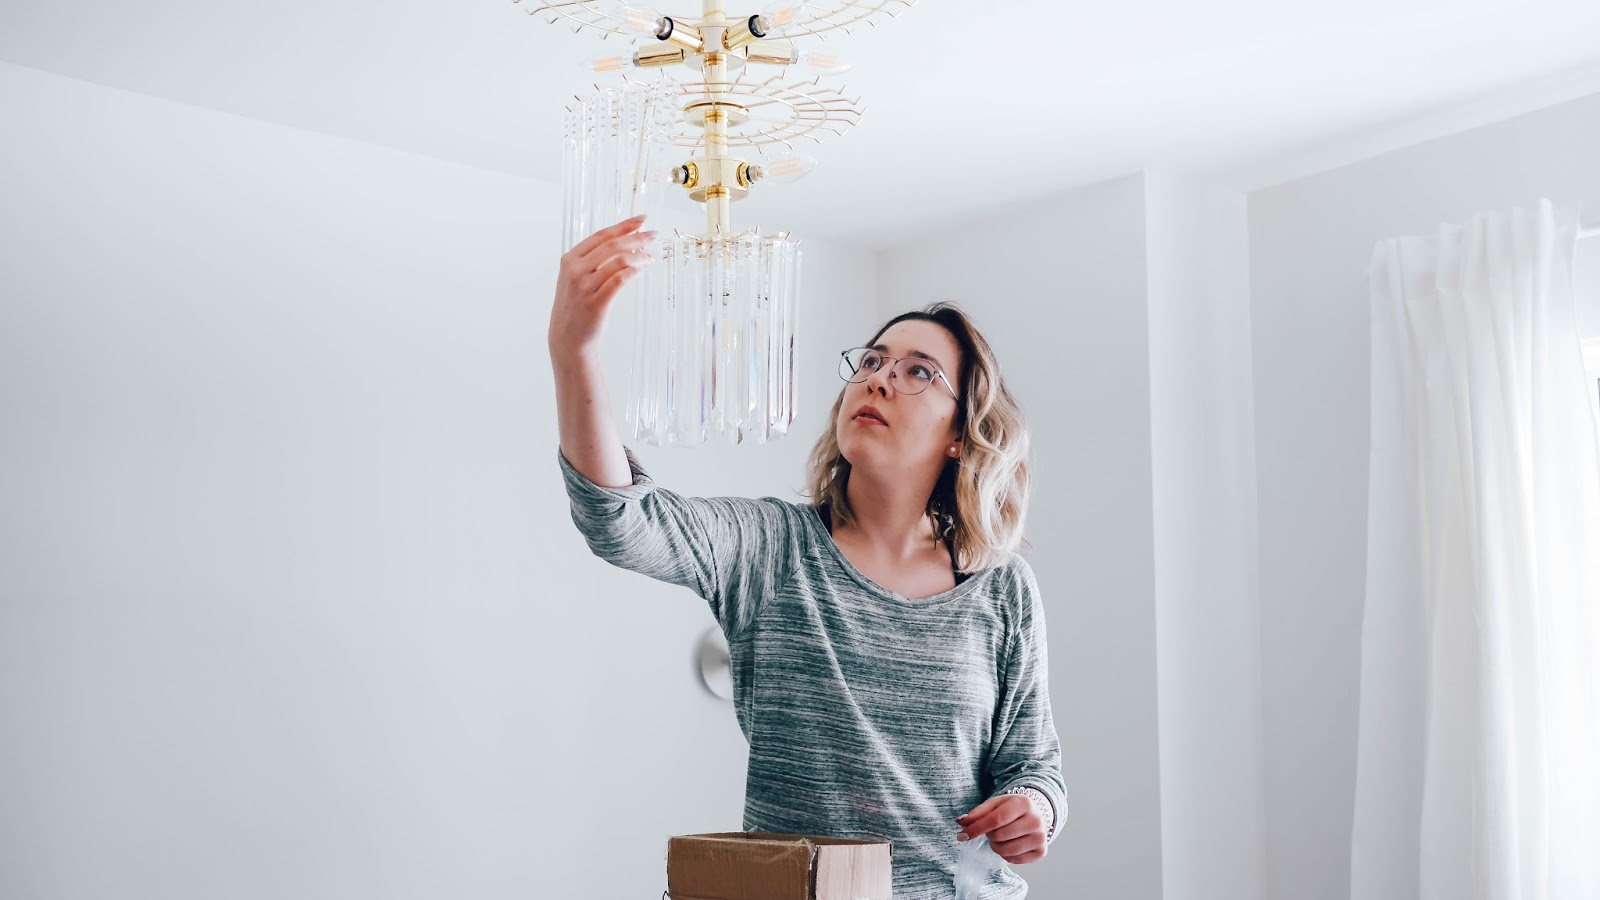 wayfair willa arlo grisella chandelier xochloegordon ottawa light decor how to home improvement